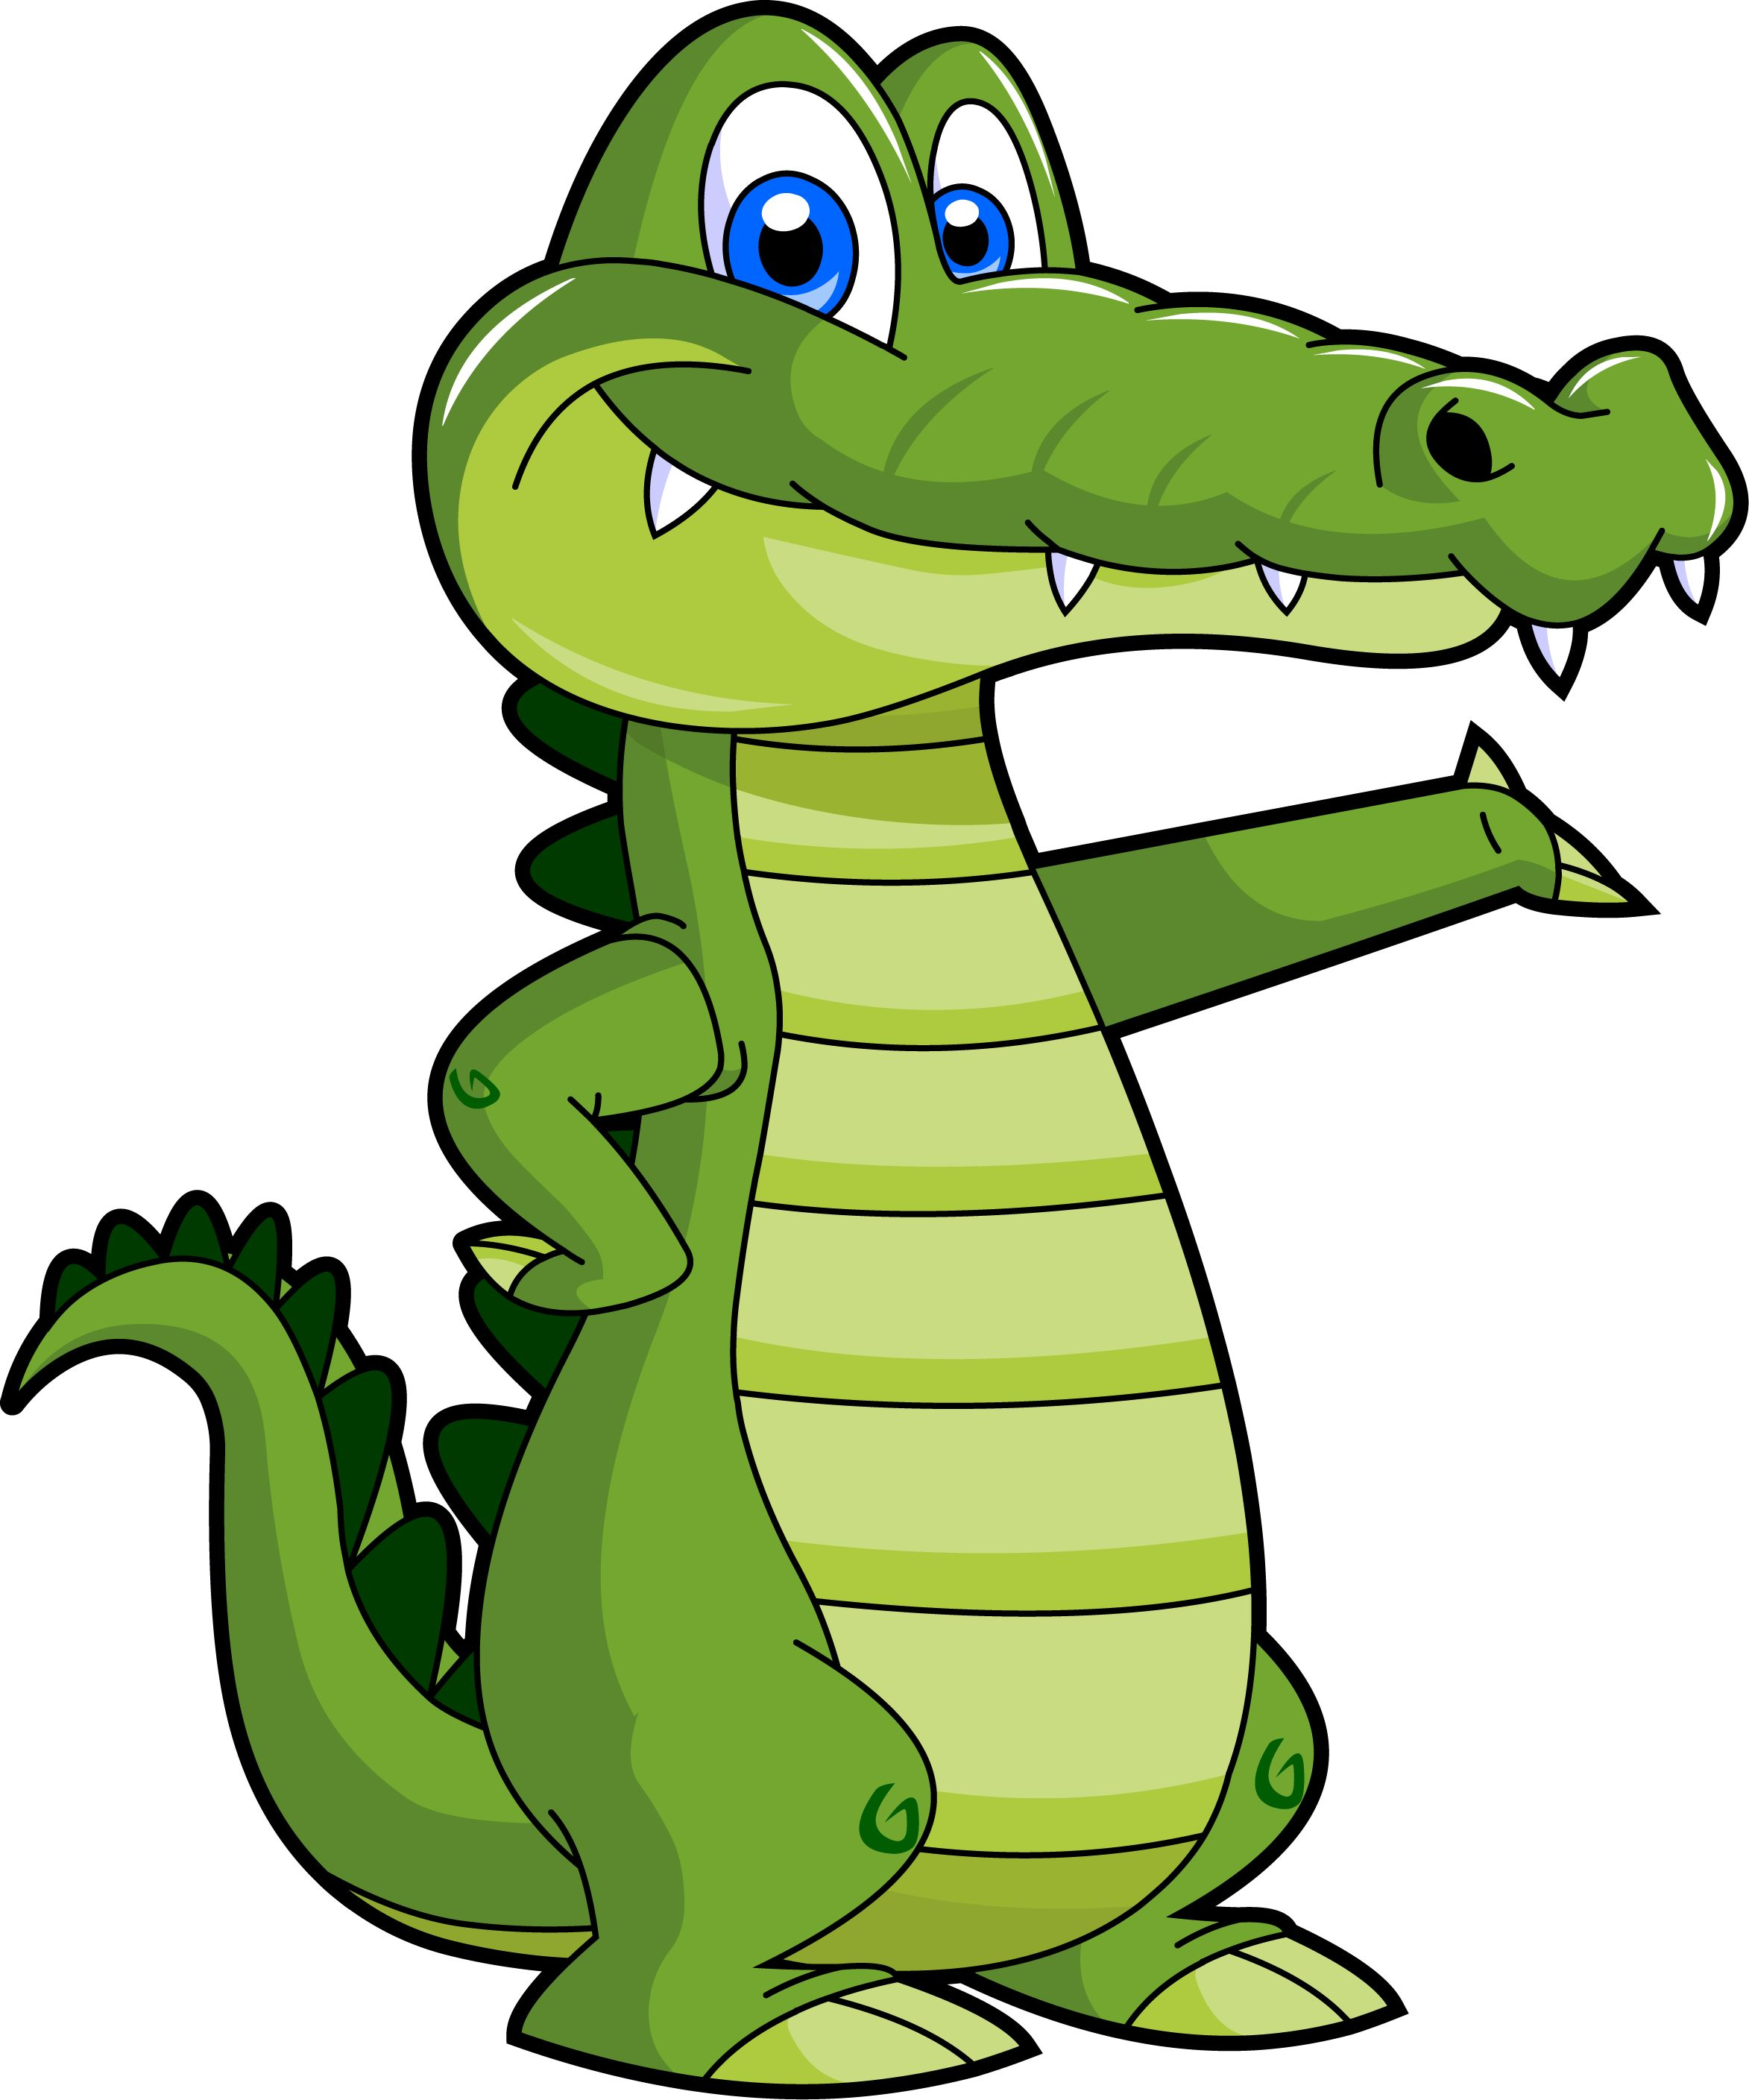 Crocodile clipart two. Dragon for kids at